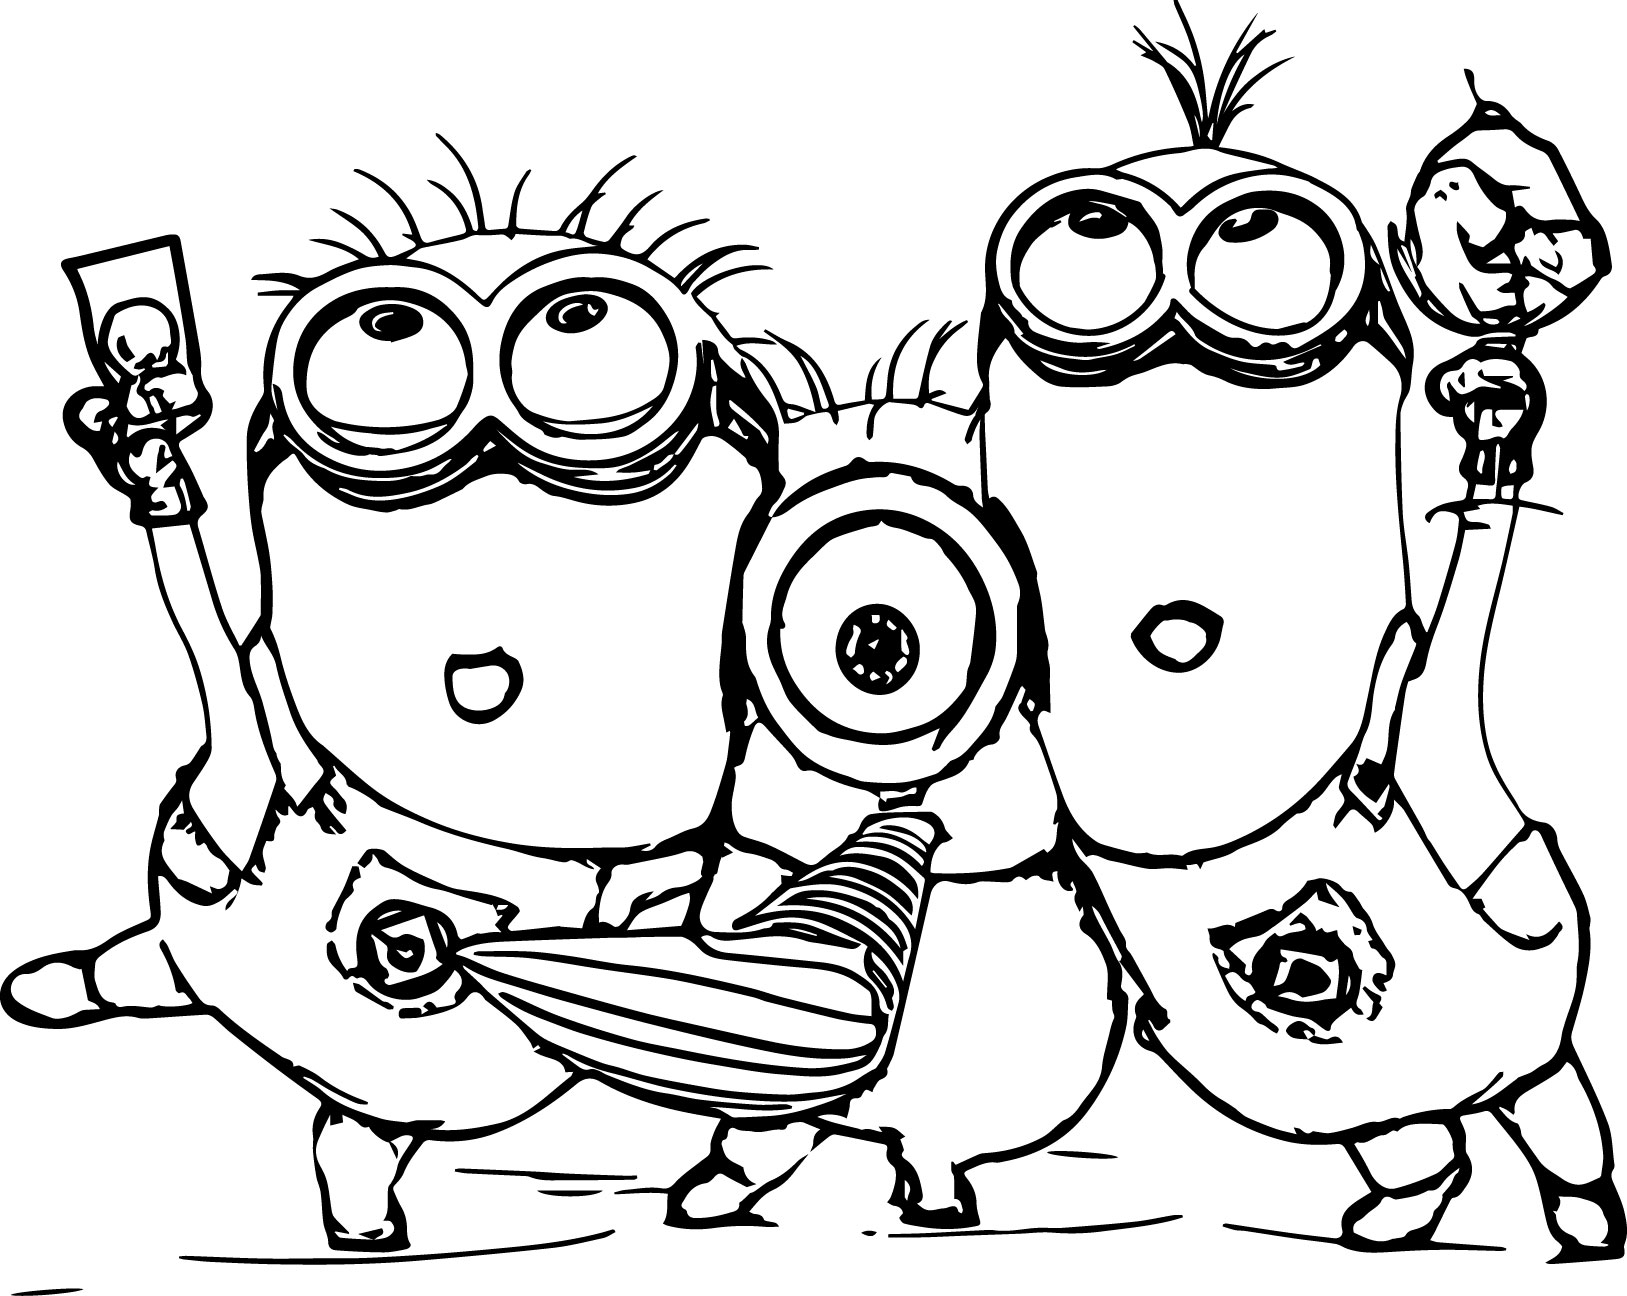 image about Printable Minion Coloring Page identify Minion Coloring Webpages - Suitable Coloring Internet pages For Small children